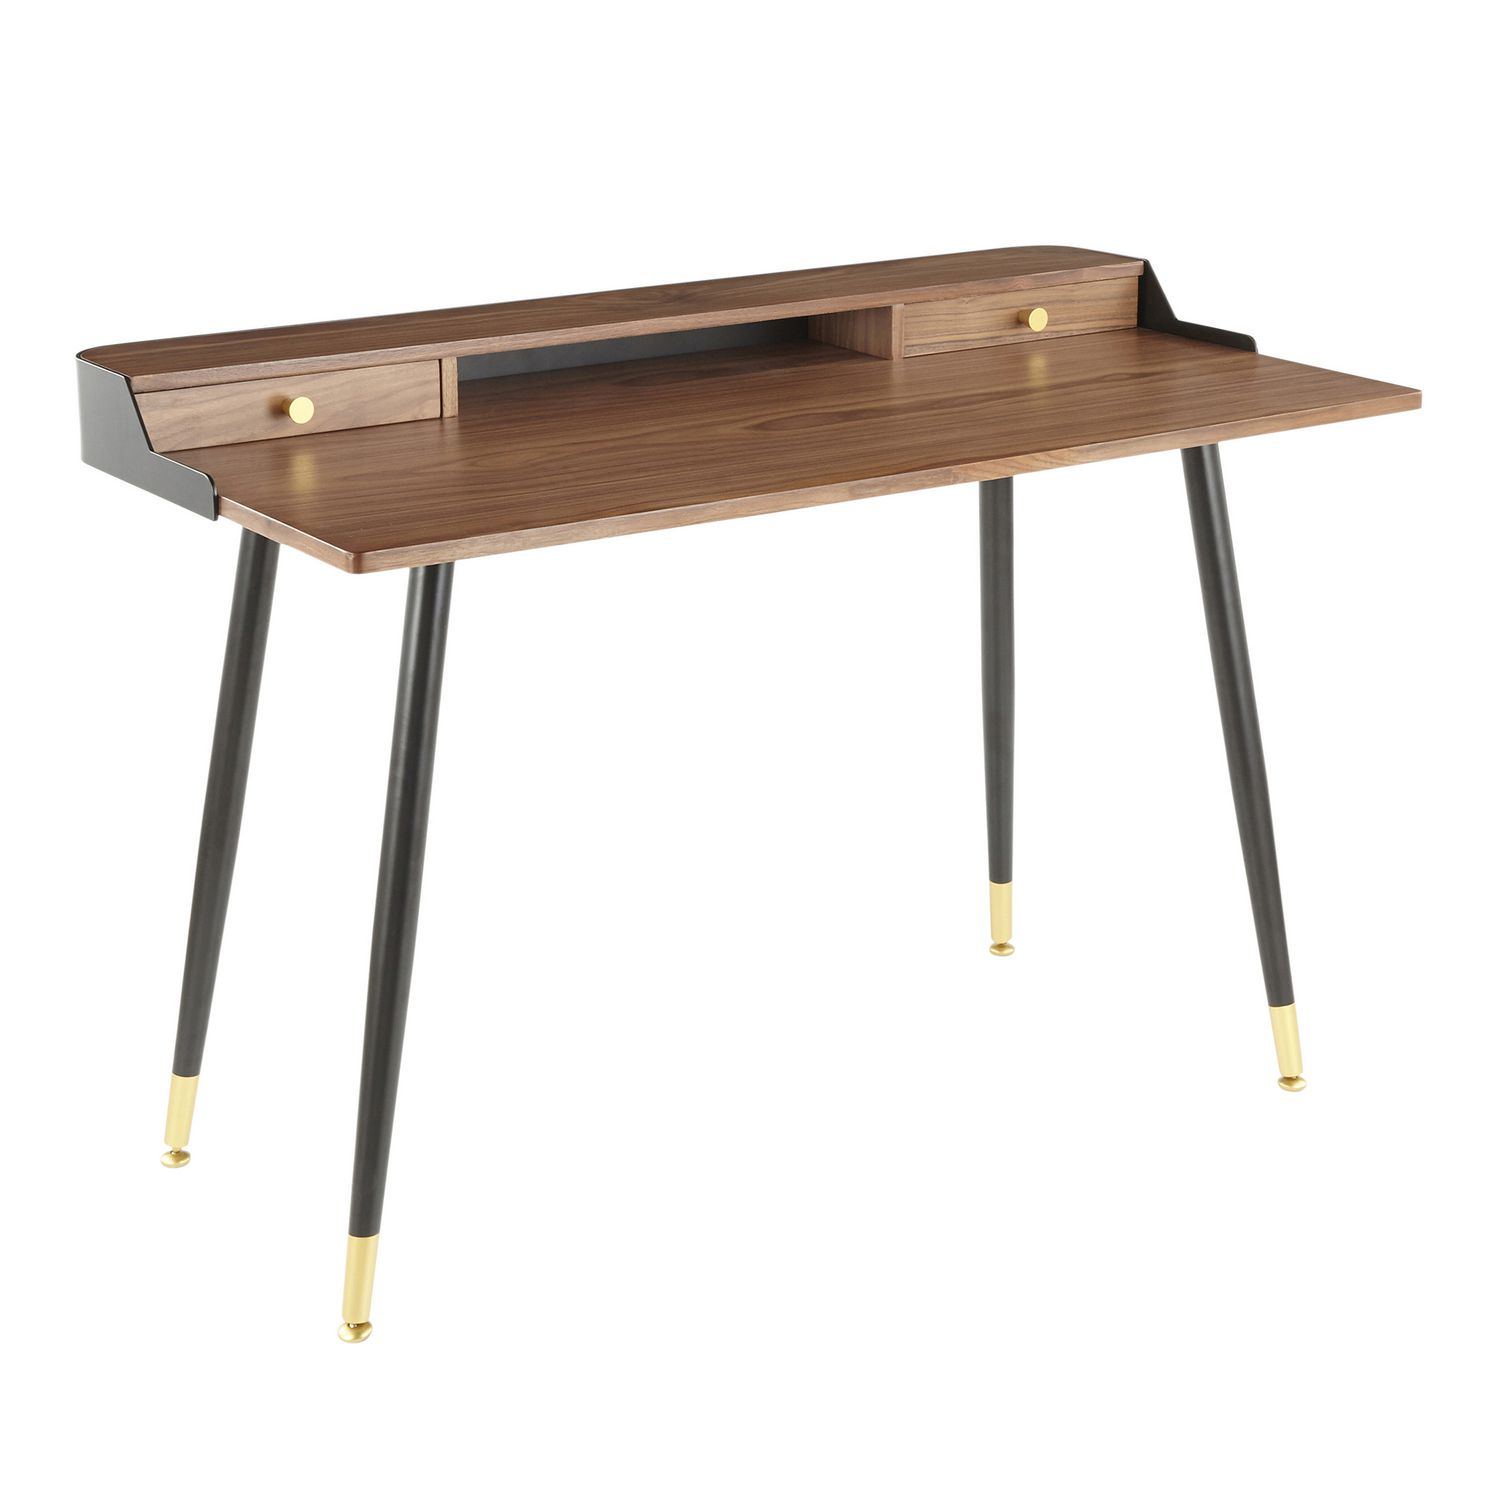 Image of: Harvey Mid Century Modern Desk By Lumisource Walmart Canada